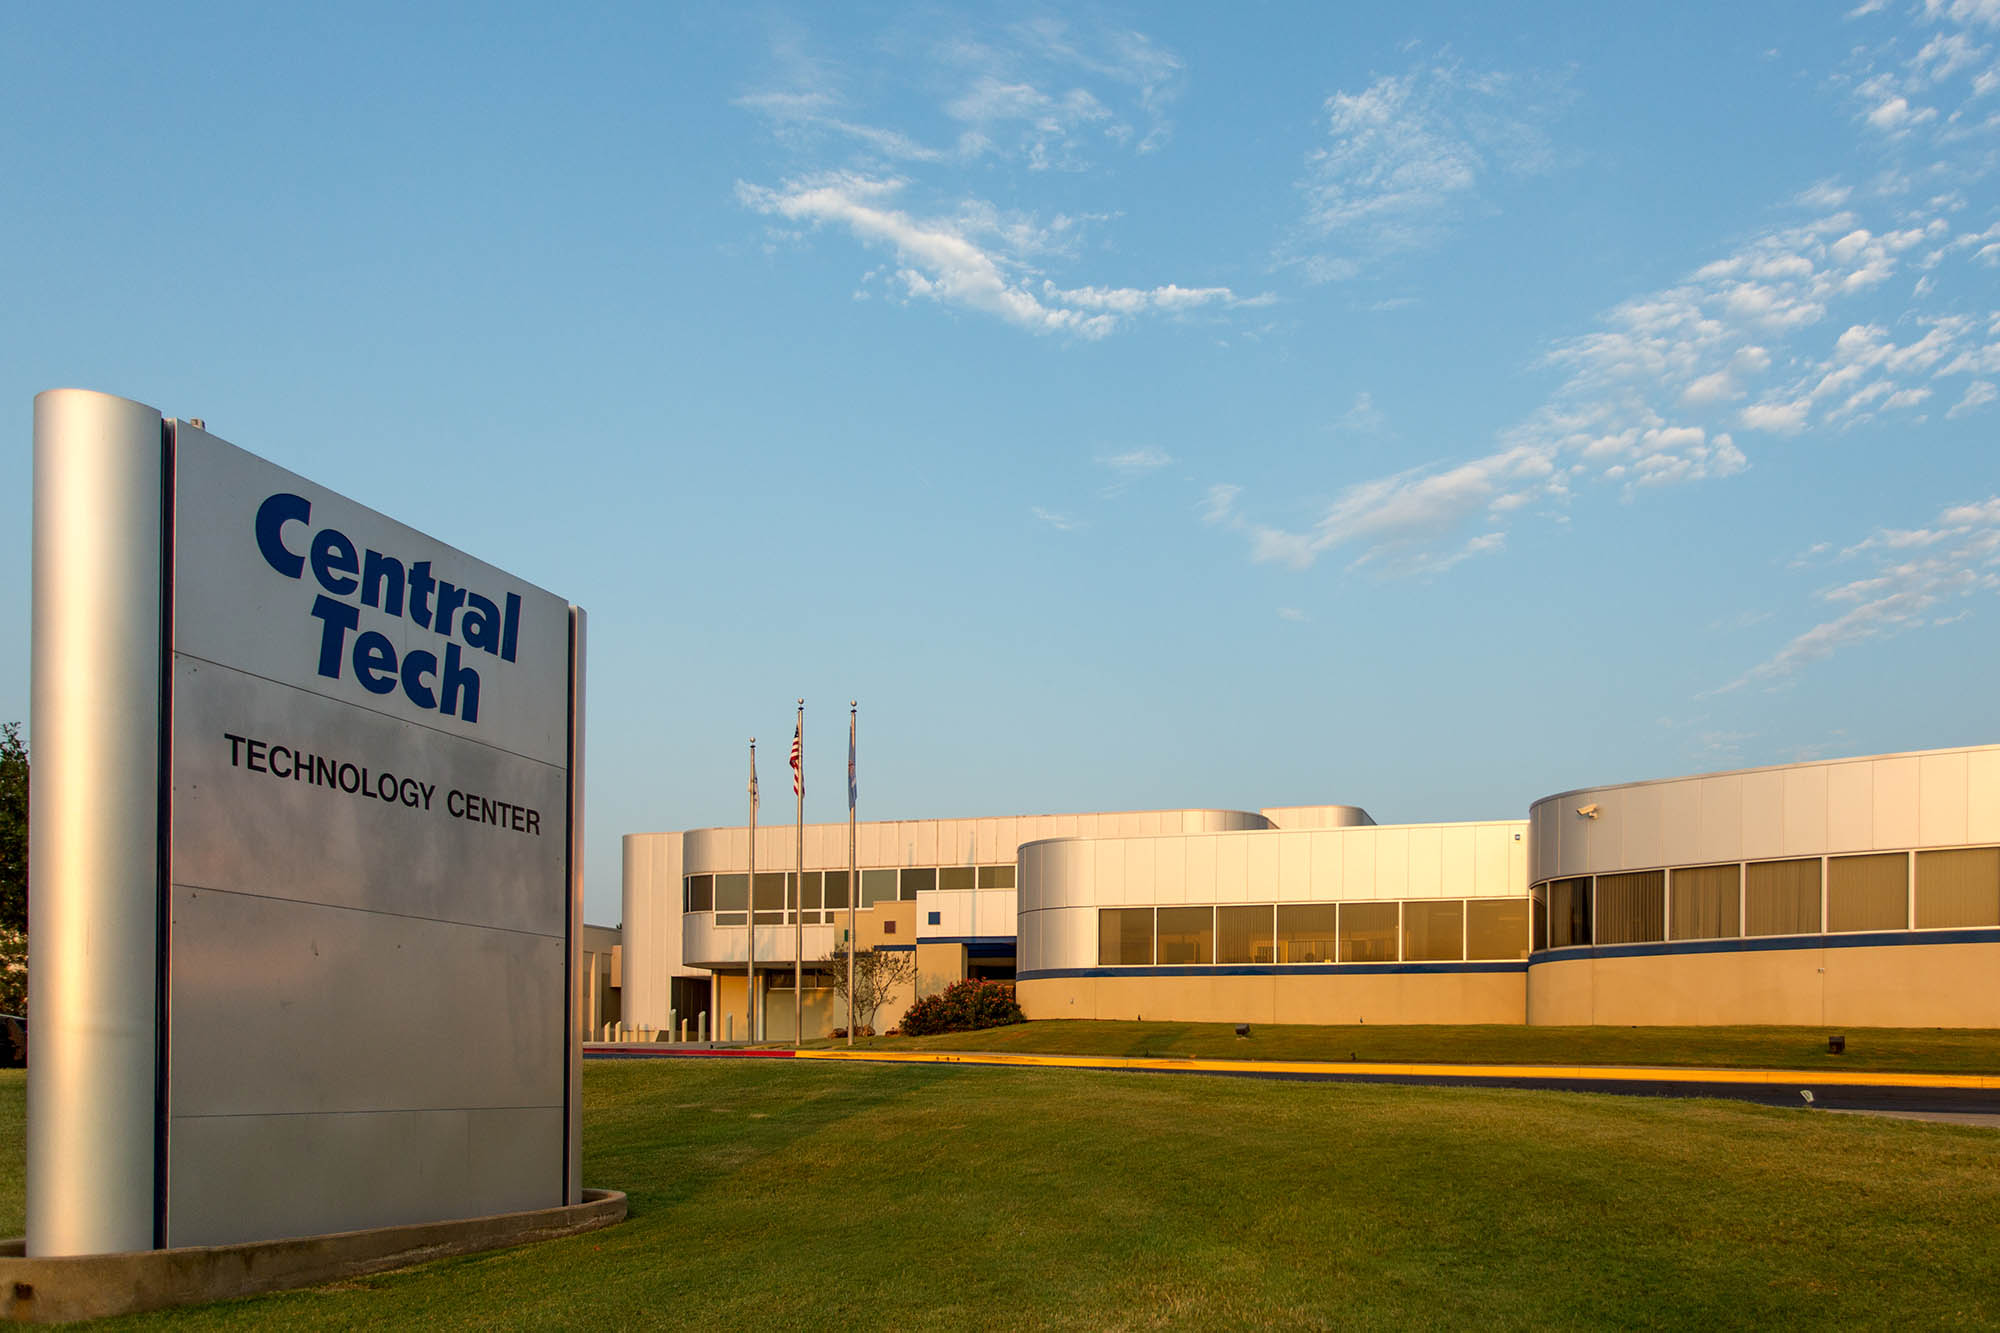 photo of the Central Tech Drumright Oklahoma campus